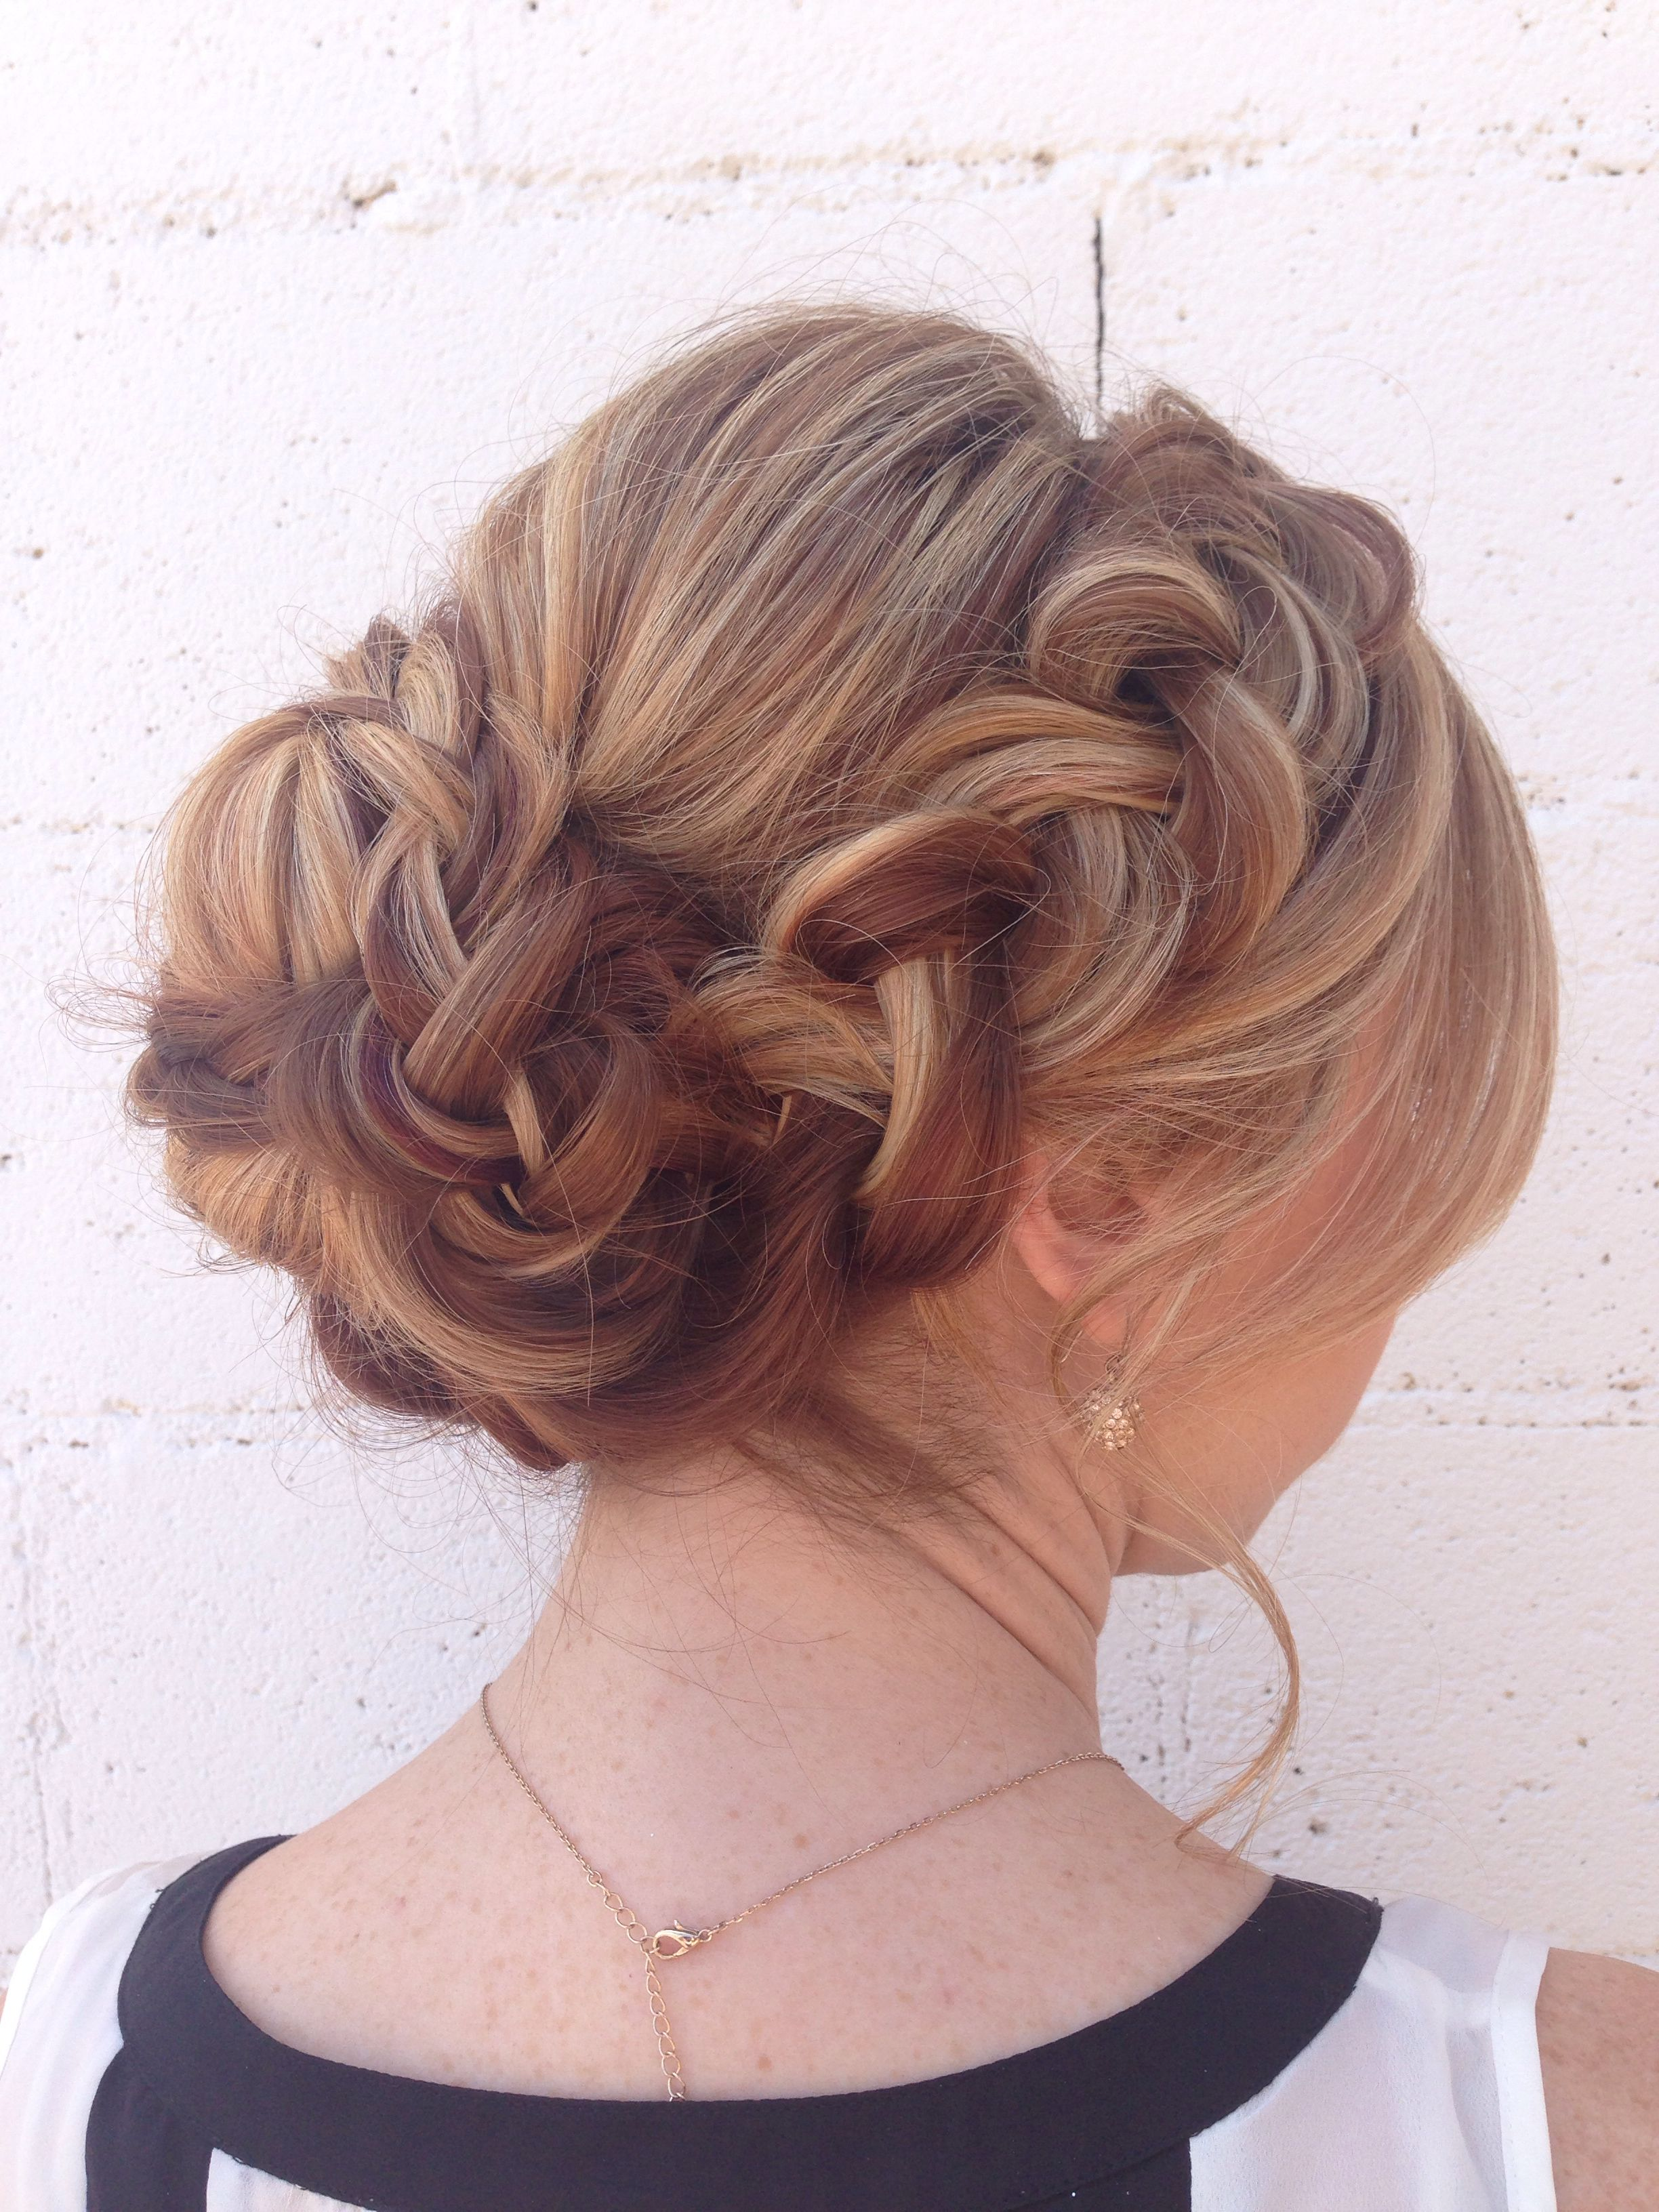 Soft Braided Updo For Long Thick Hair Thick Hair Updo Thick Hair Styles Long Thick Hair